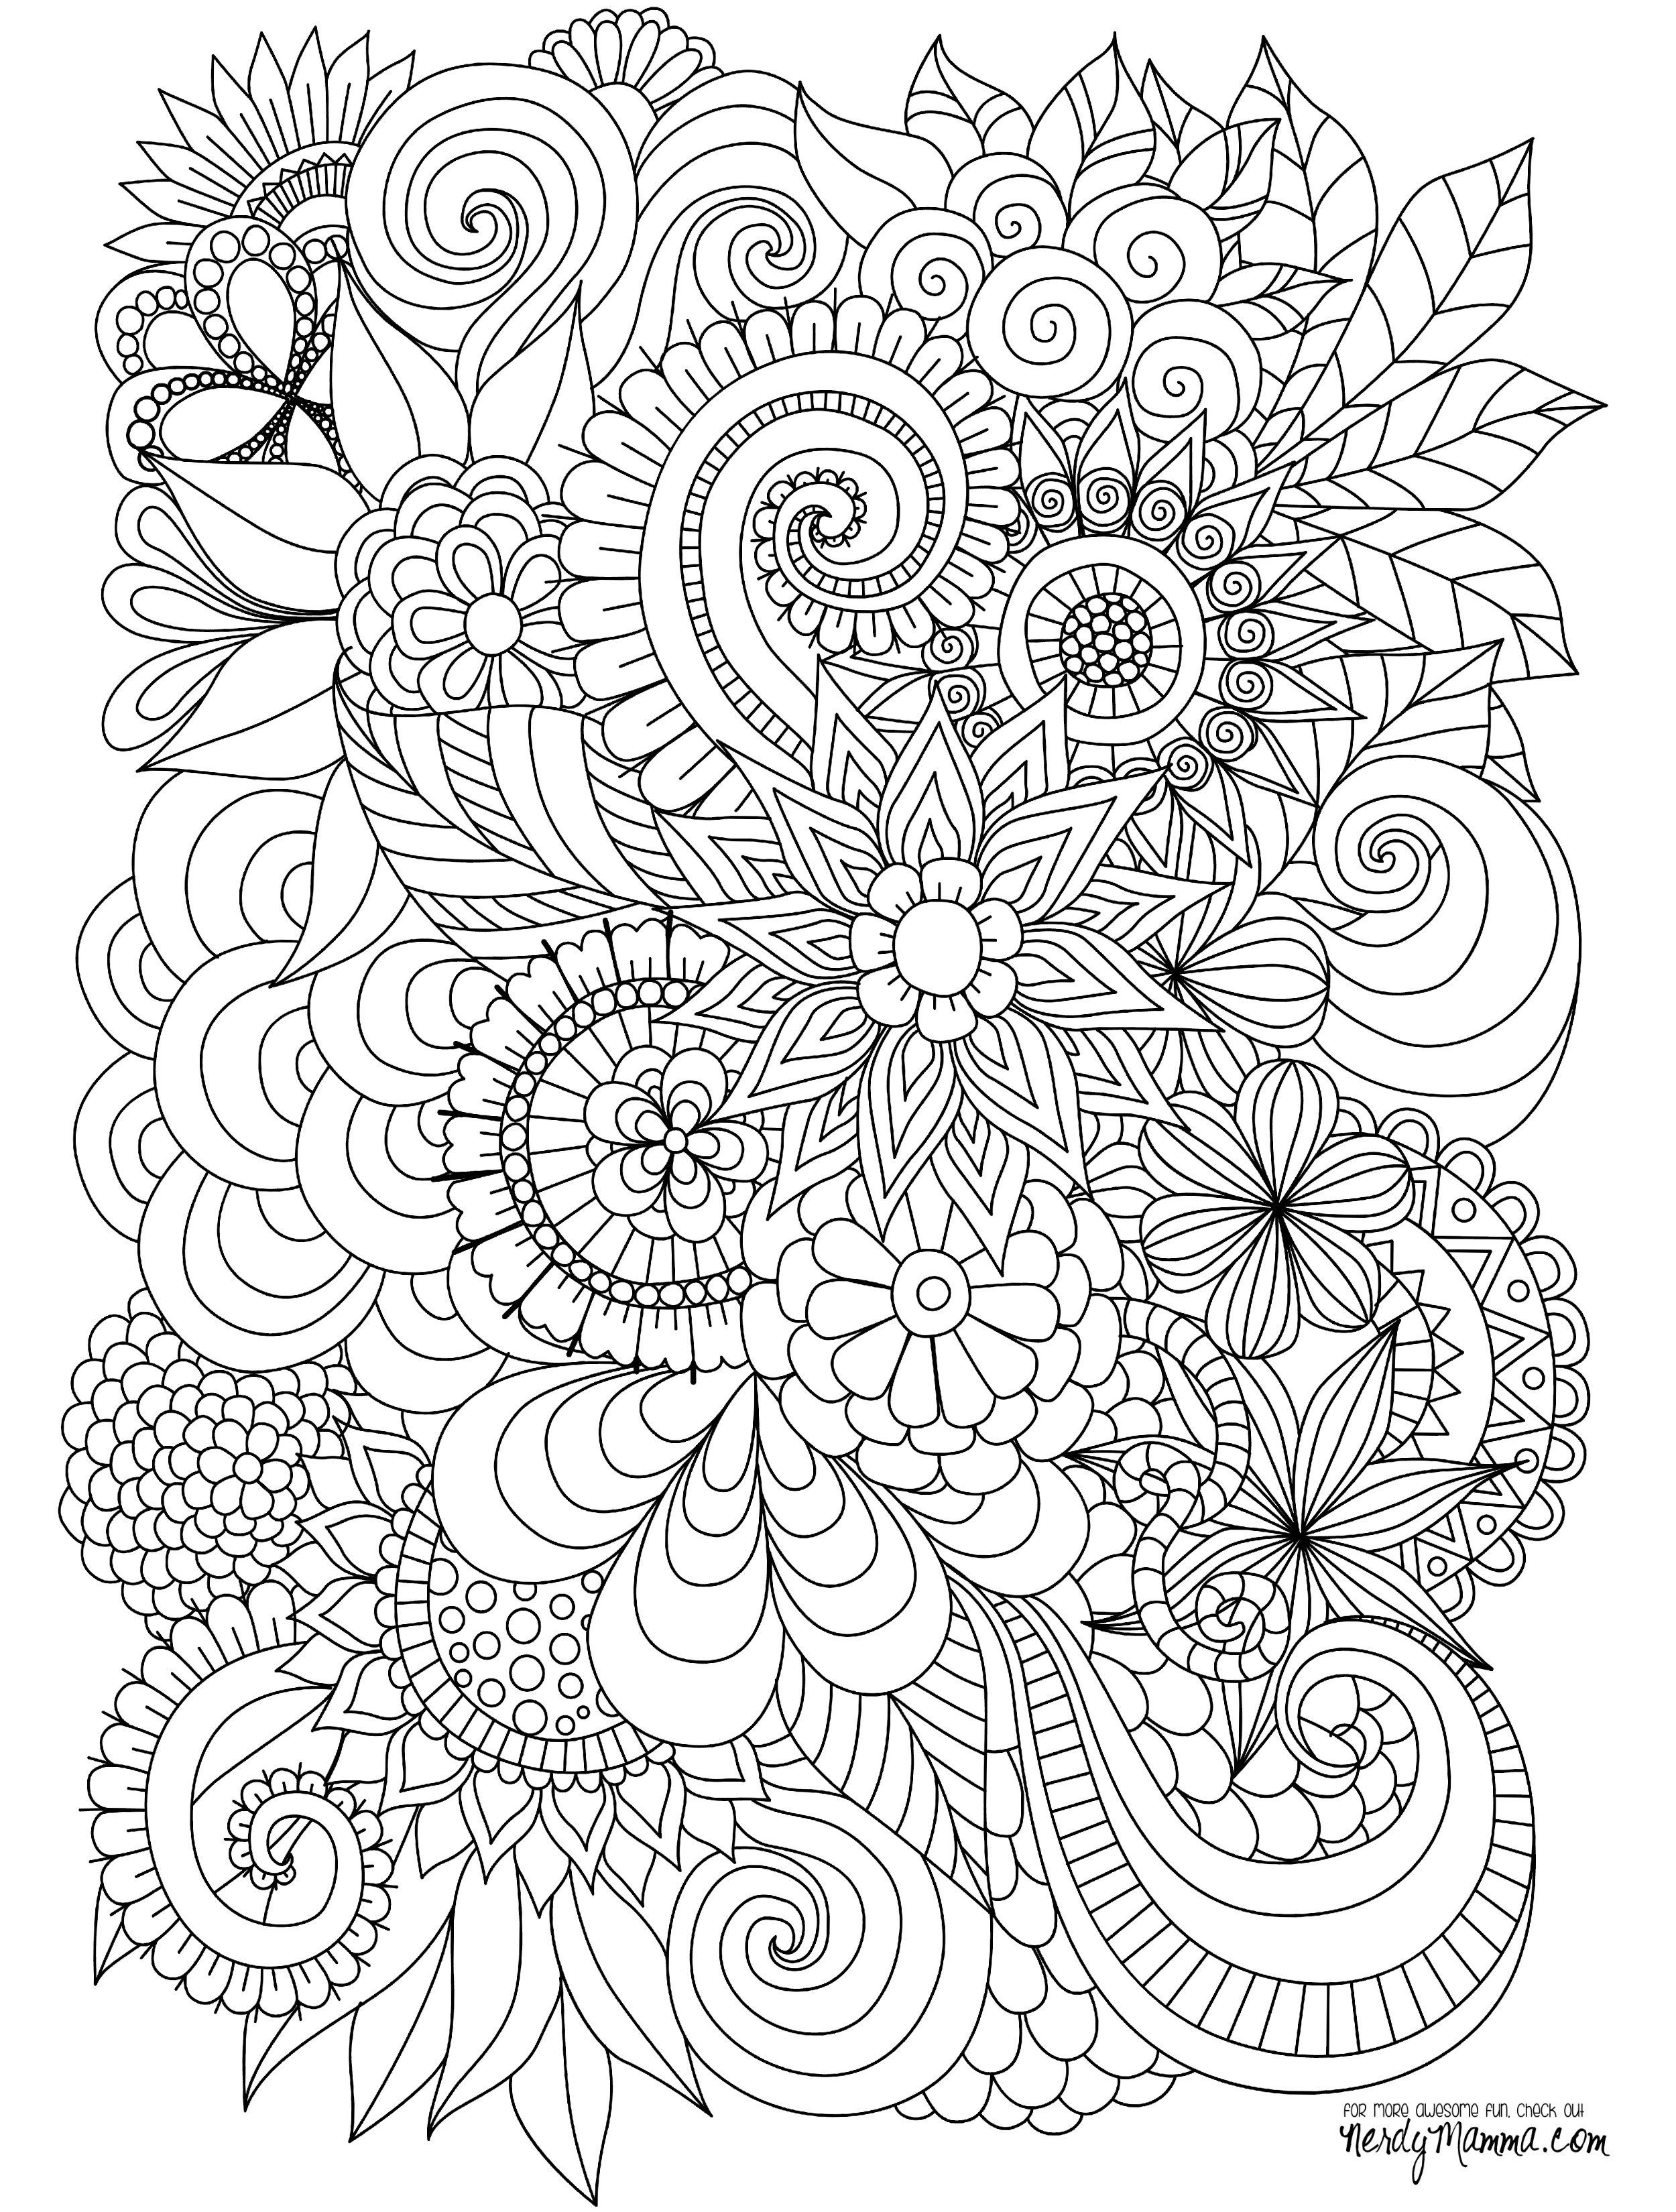 mindfulness coloring pages Collection-Flowers Abstract Coloring pages colouring adult detailed advanced printable Kleuren voor volwassenen coloriage pour adulte anti stress kleurplaat voor 18-n